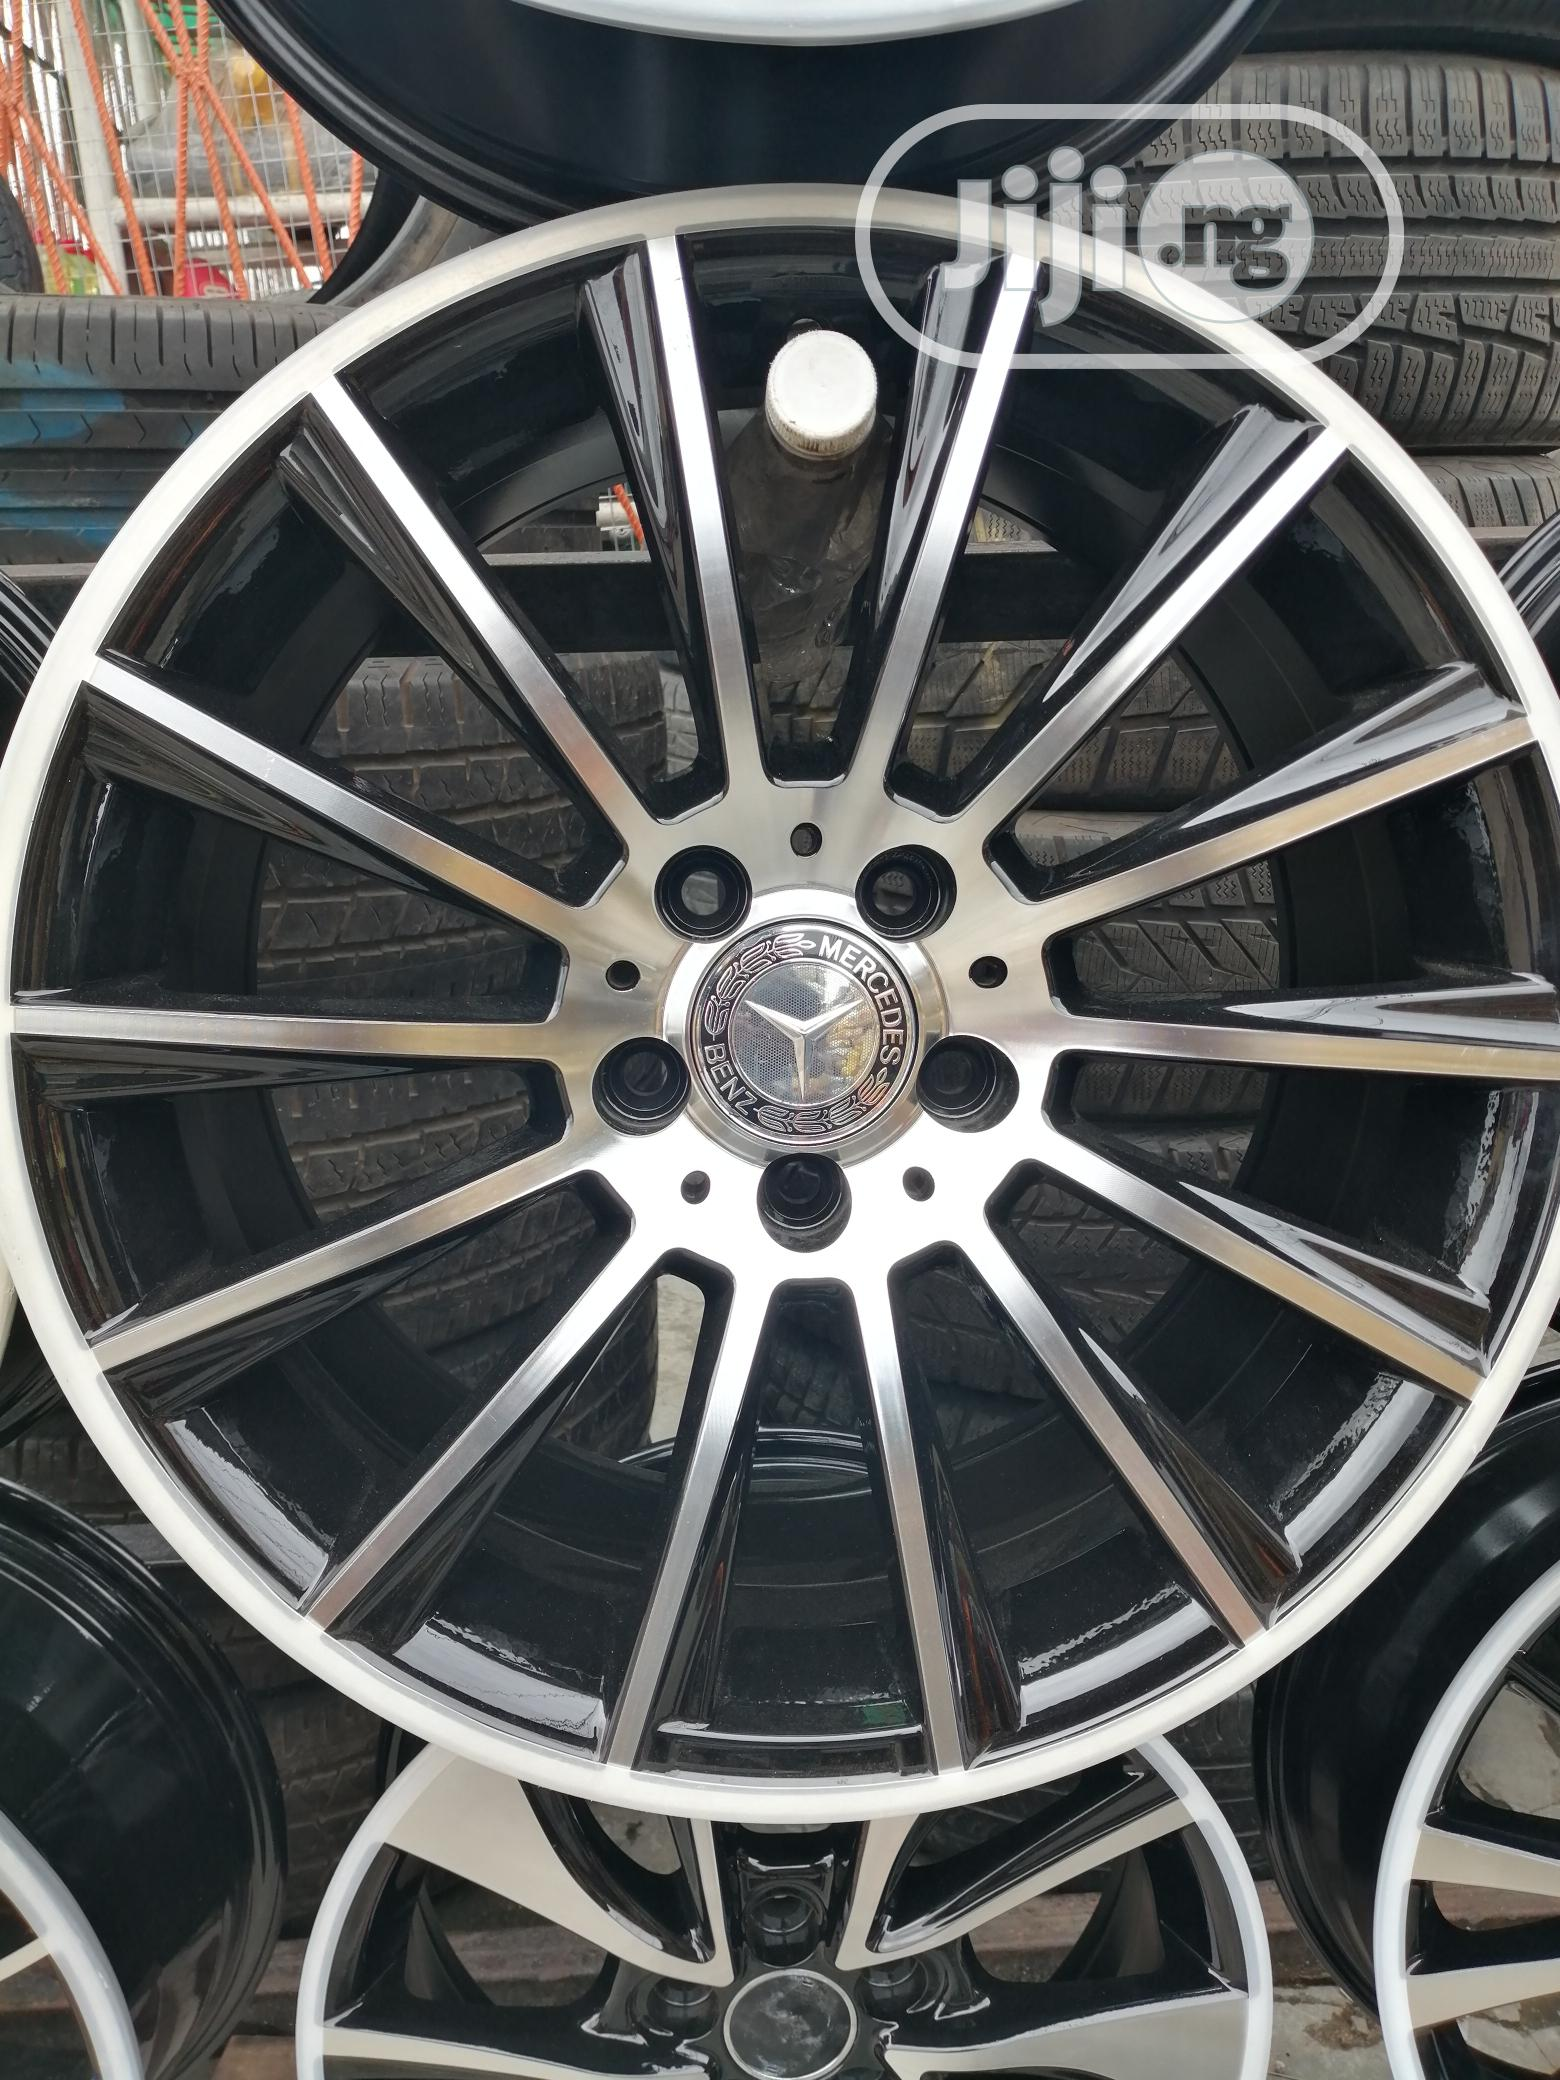 Archive: GLK 350 RIM 19 Black And Pencil Stainless Mercedes Benz